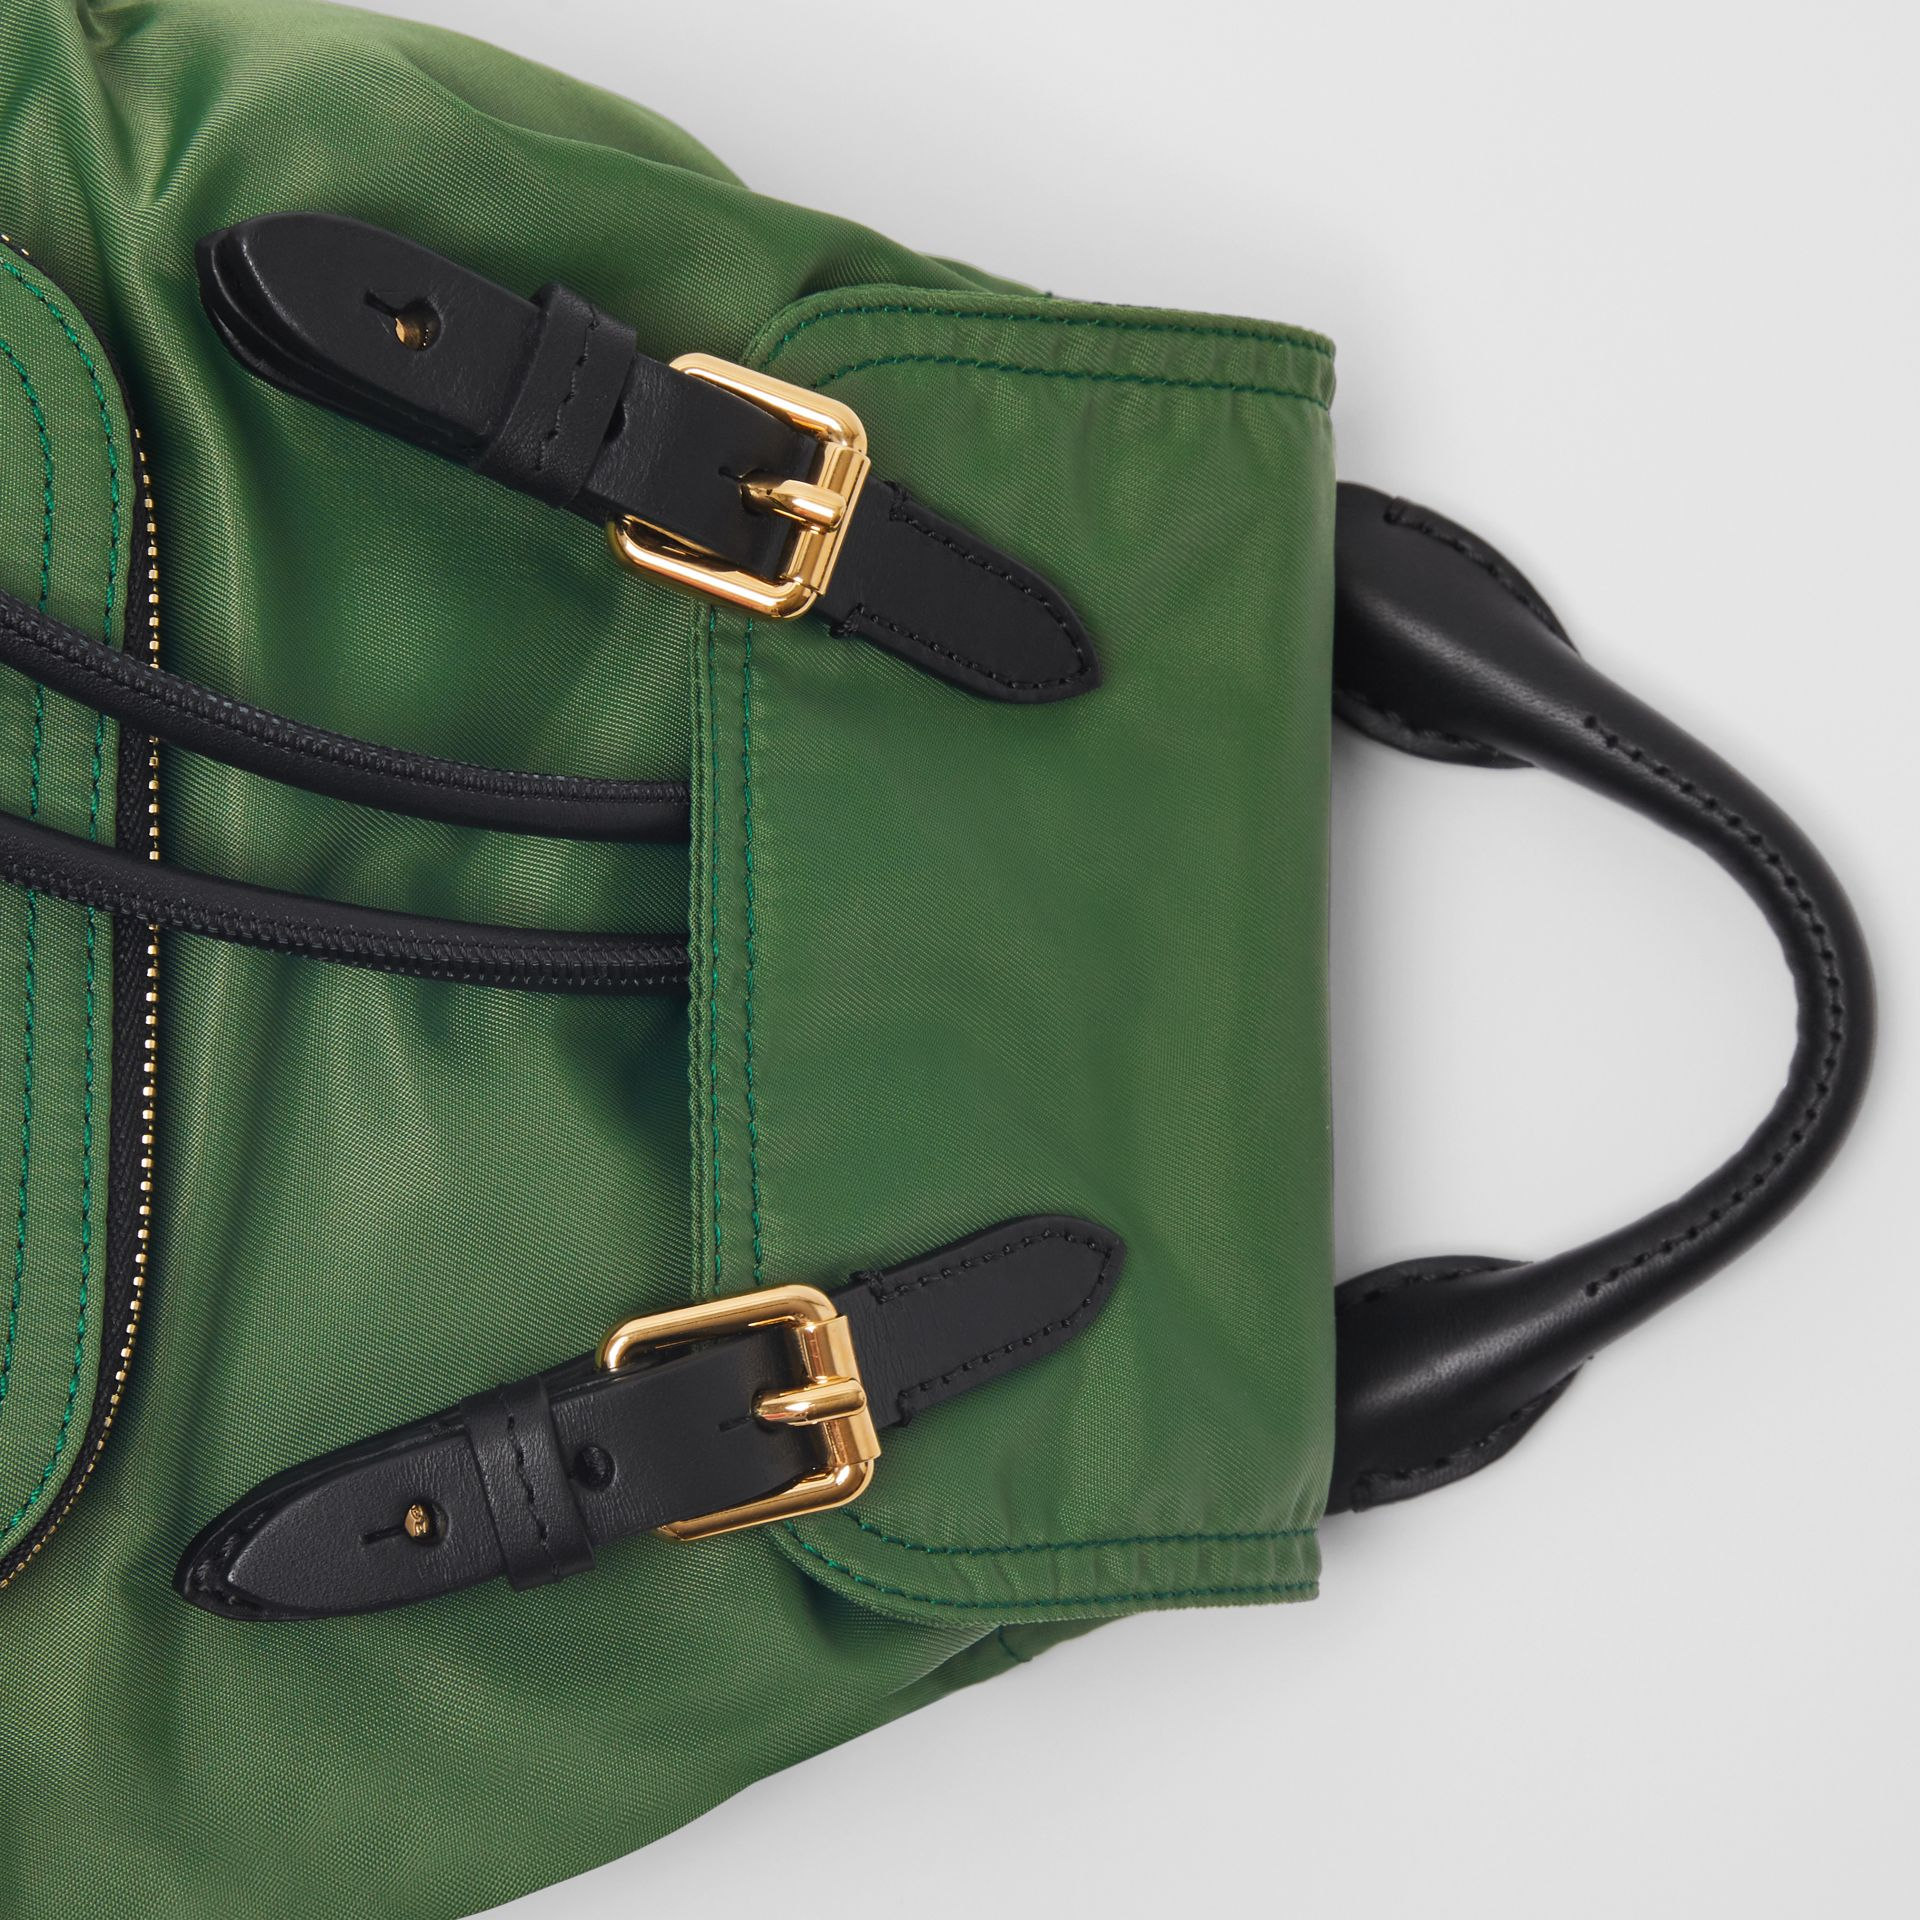 The Small Crossbody Rucksack in Nylon in Racing Green - Women | Burberry United States - gallery image 1